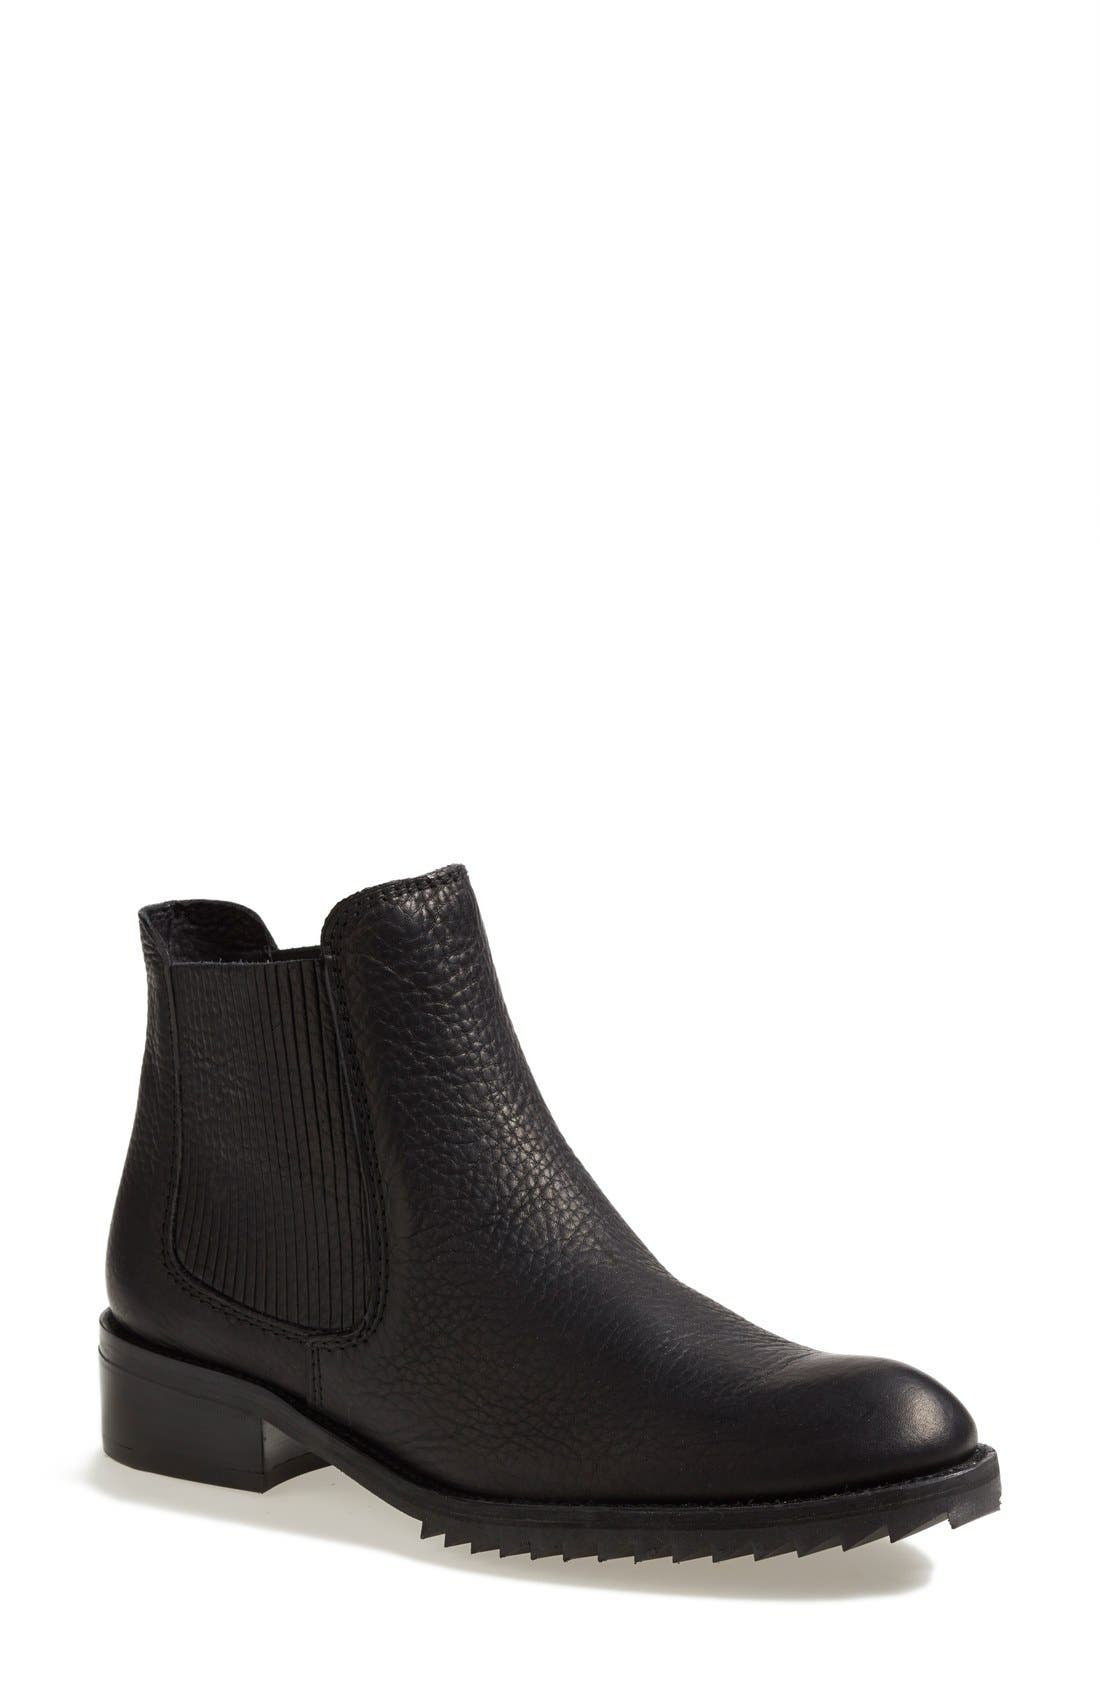 Alternate Image 1 Selected - Pedro Garcia 'Odalys' Chelsea Boot (Women)